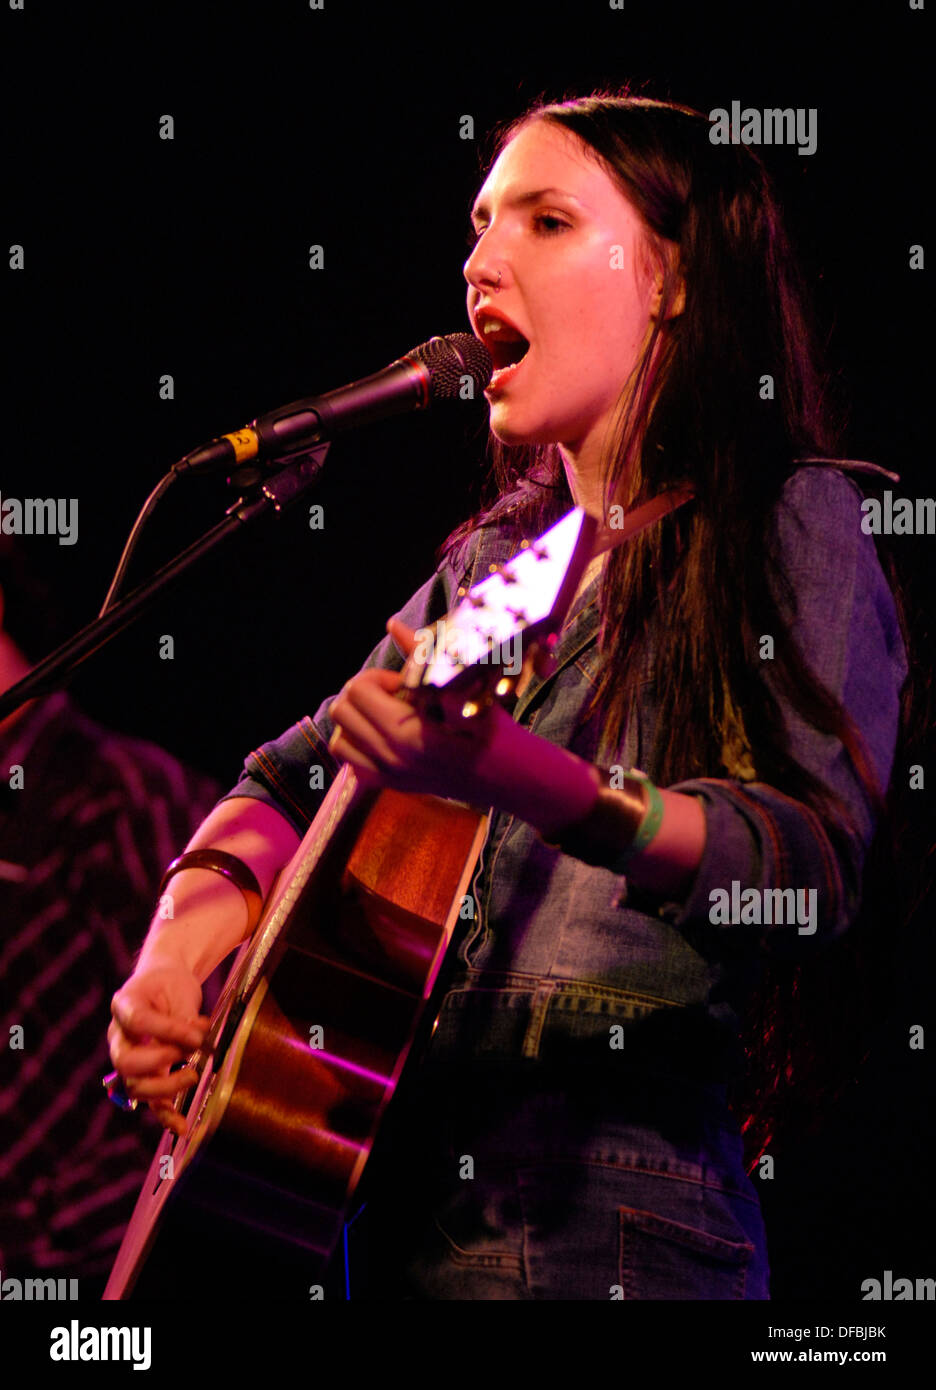 Josie Field performs at Splashy Fen music festival held annually in the Drakensberg mountains, April 5, 2007. © Stock Photo